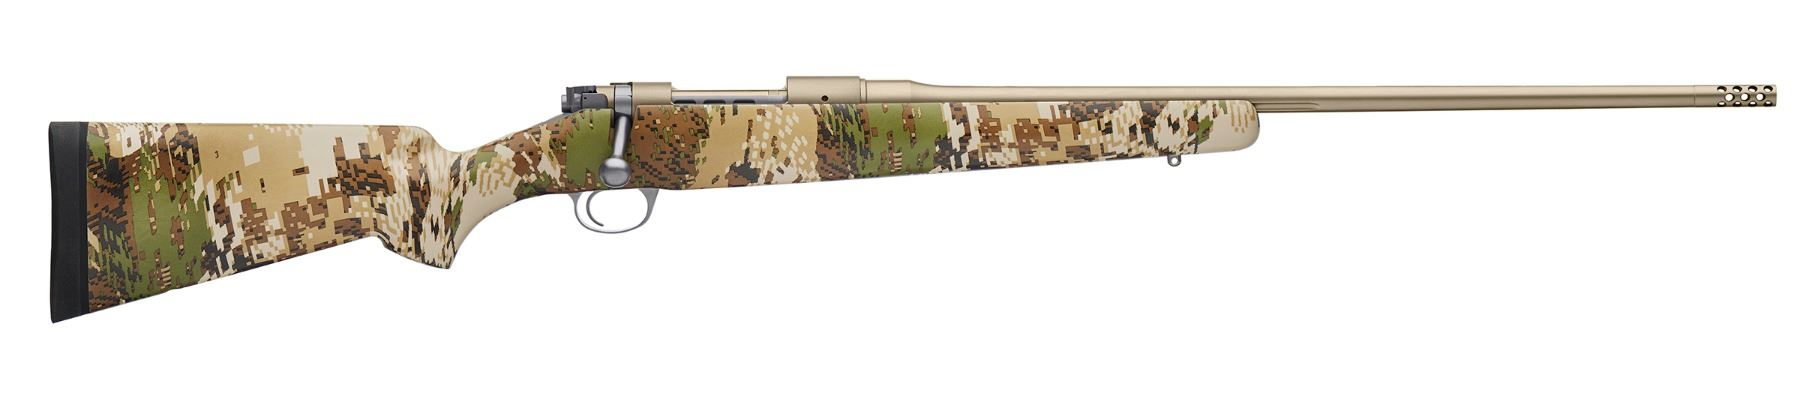 KIMBER 84M MOUNTAIN ASCENT RIFLE 6.5 CREEDMOOR  KIMBER BOOTH# 1305 FRIENDS OF WSF